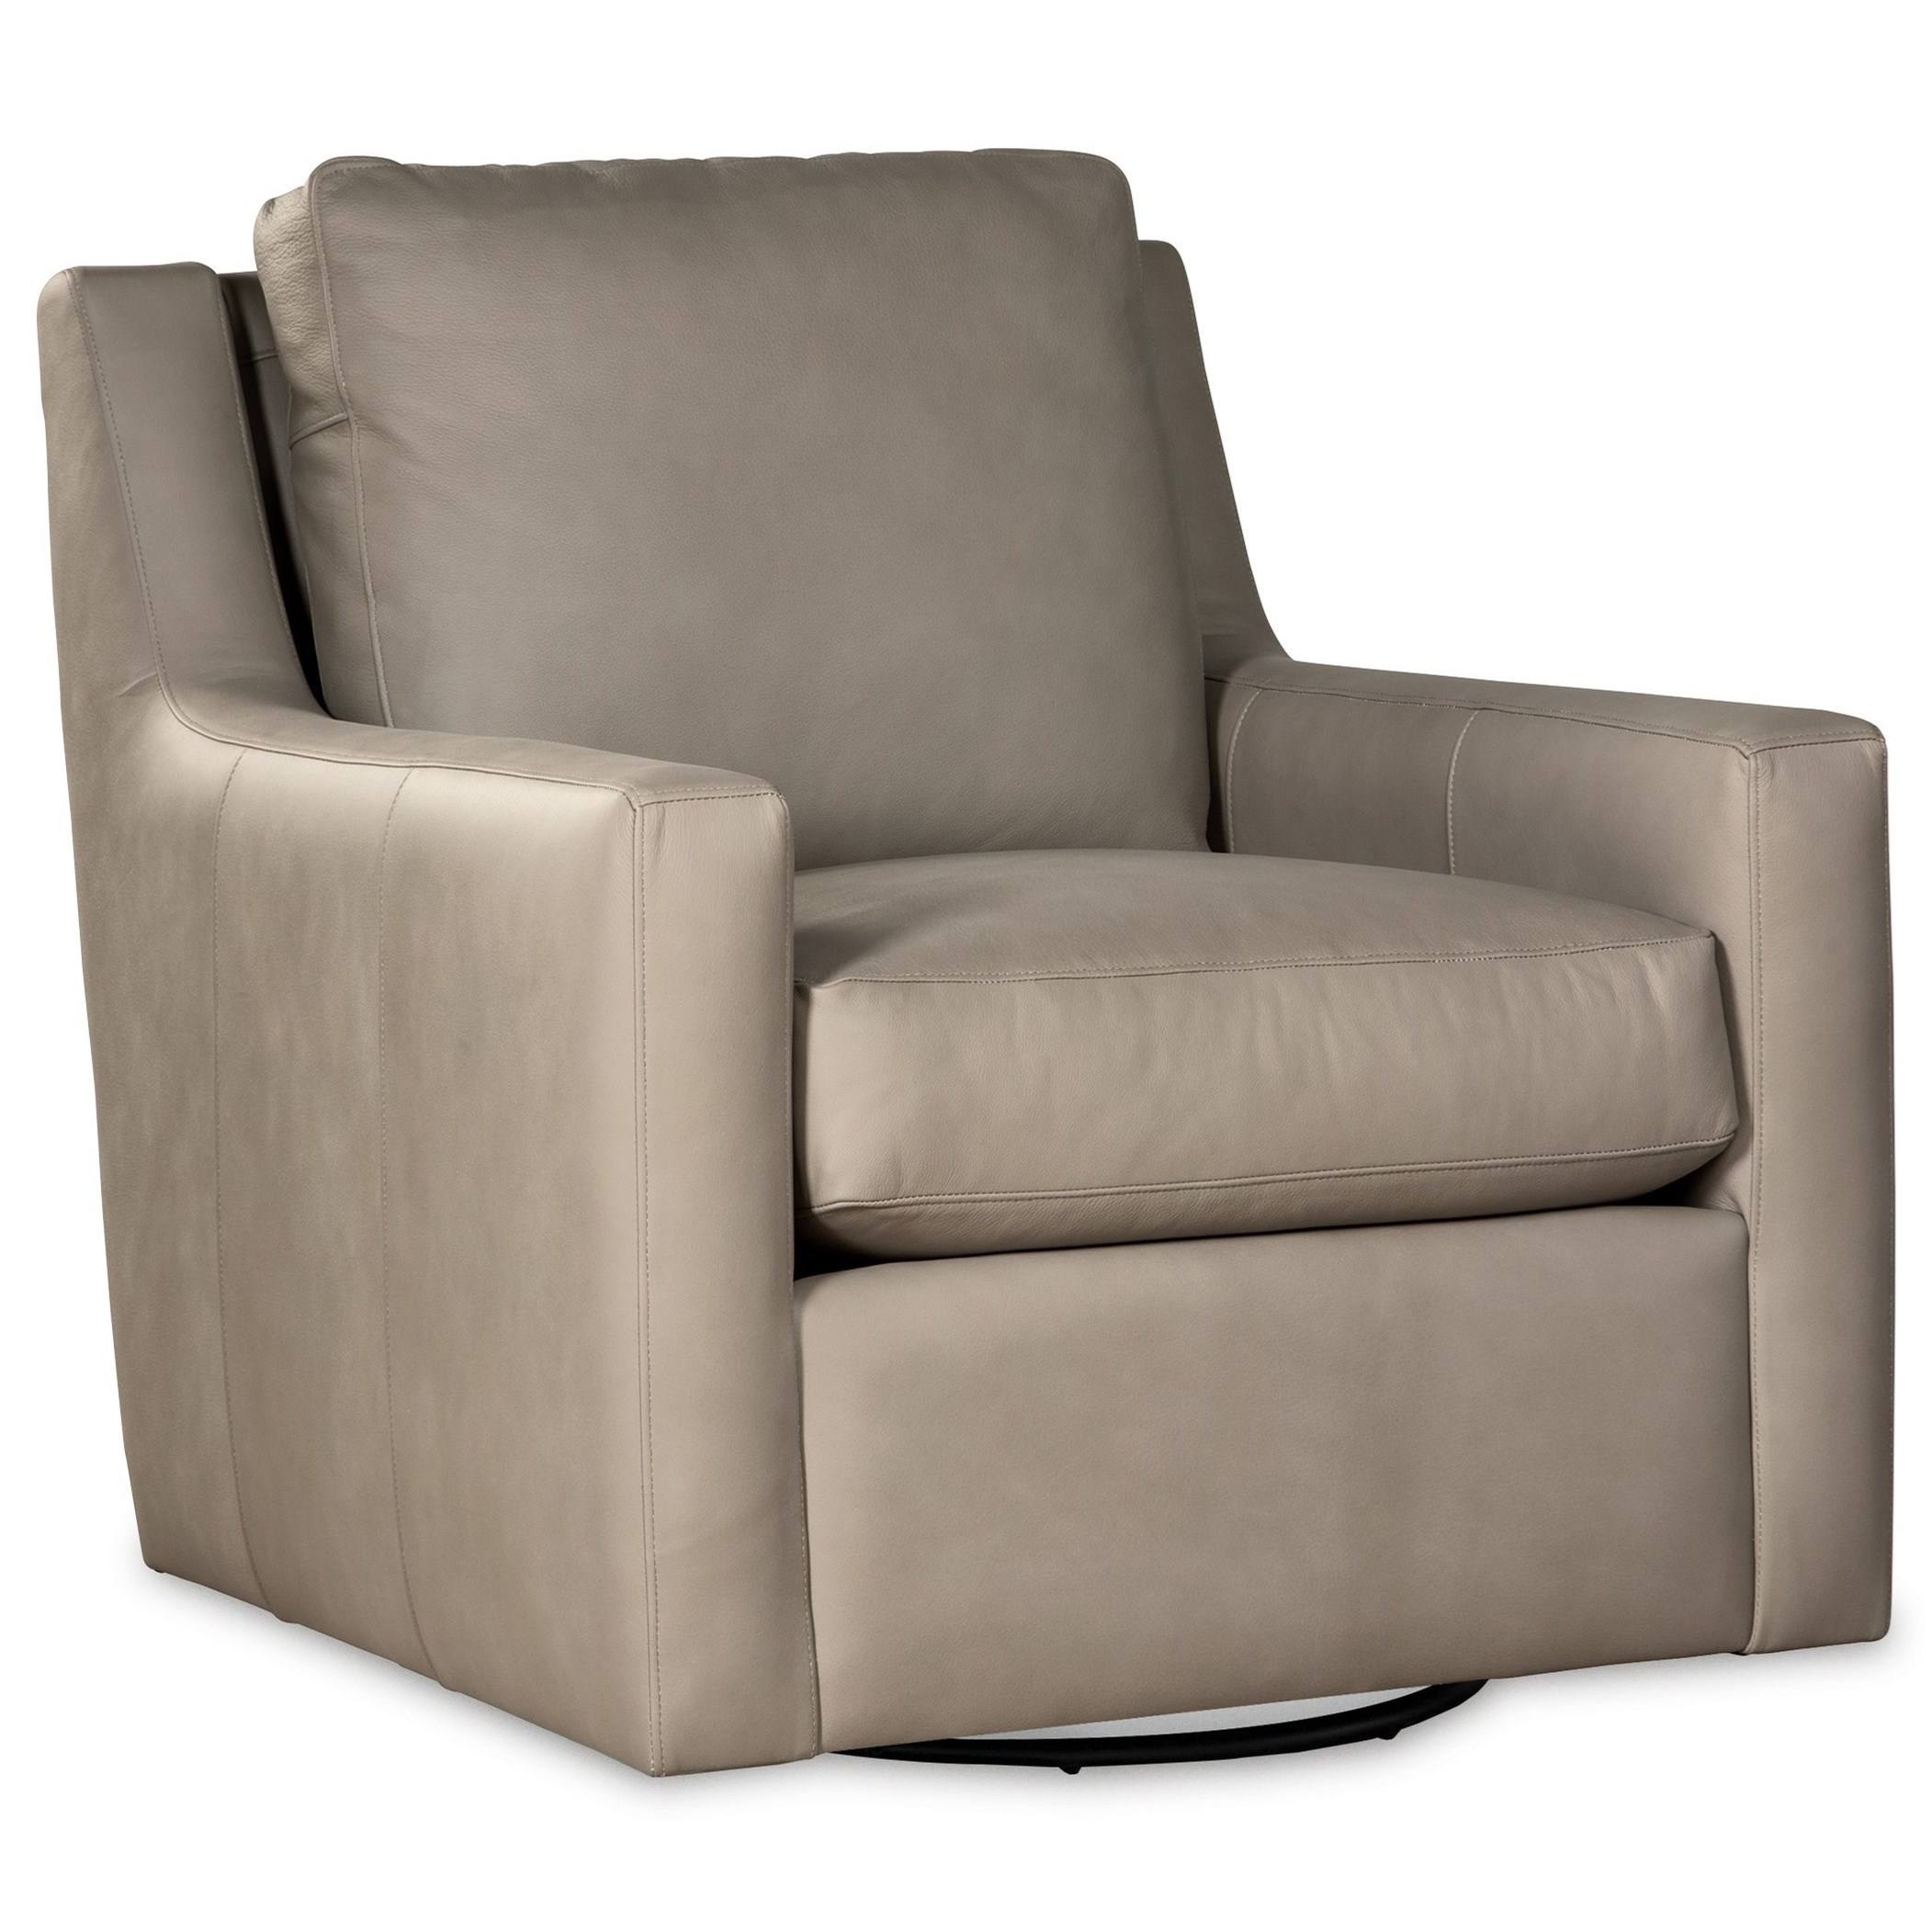 L072510 Swivel Glider Chair by Craftmaster at Baer's Furniture